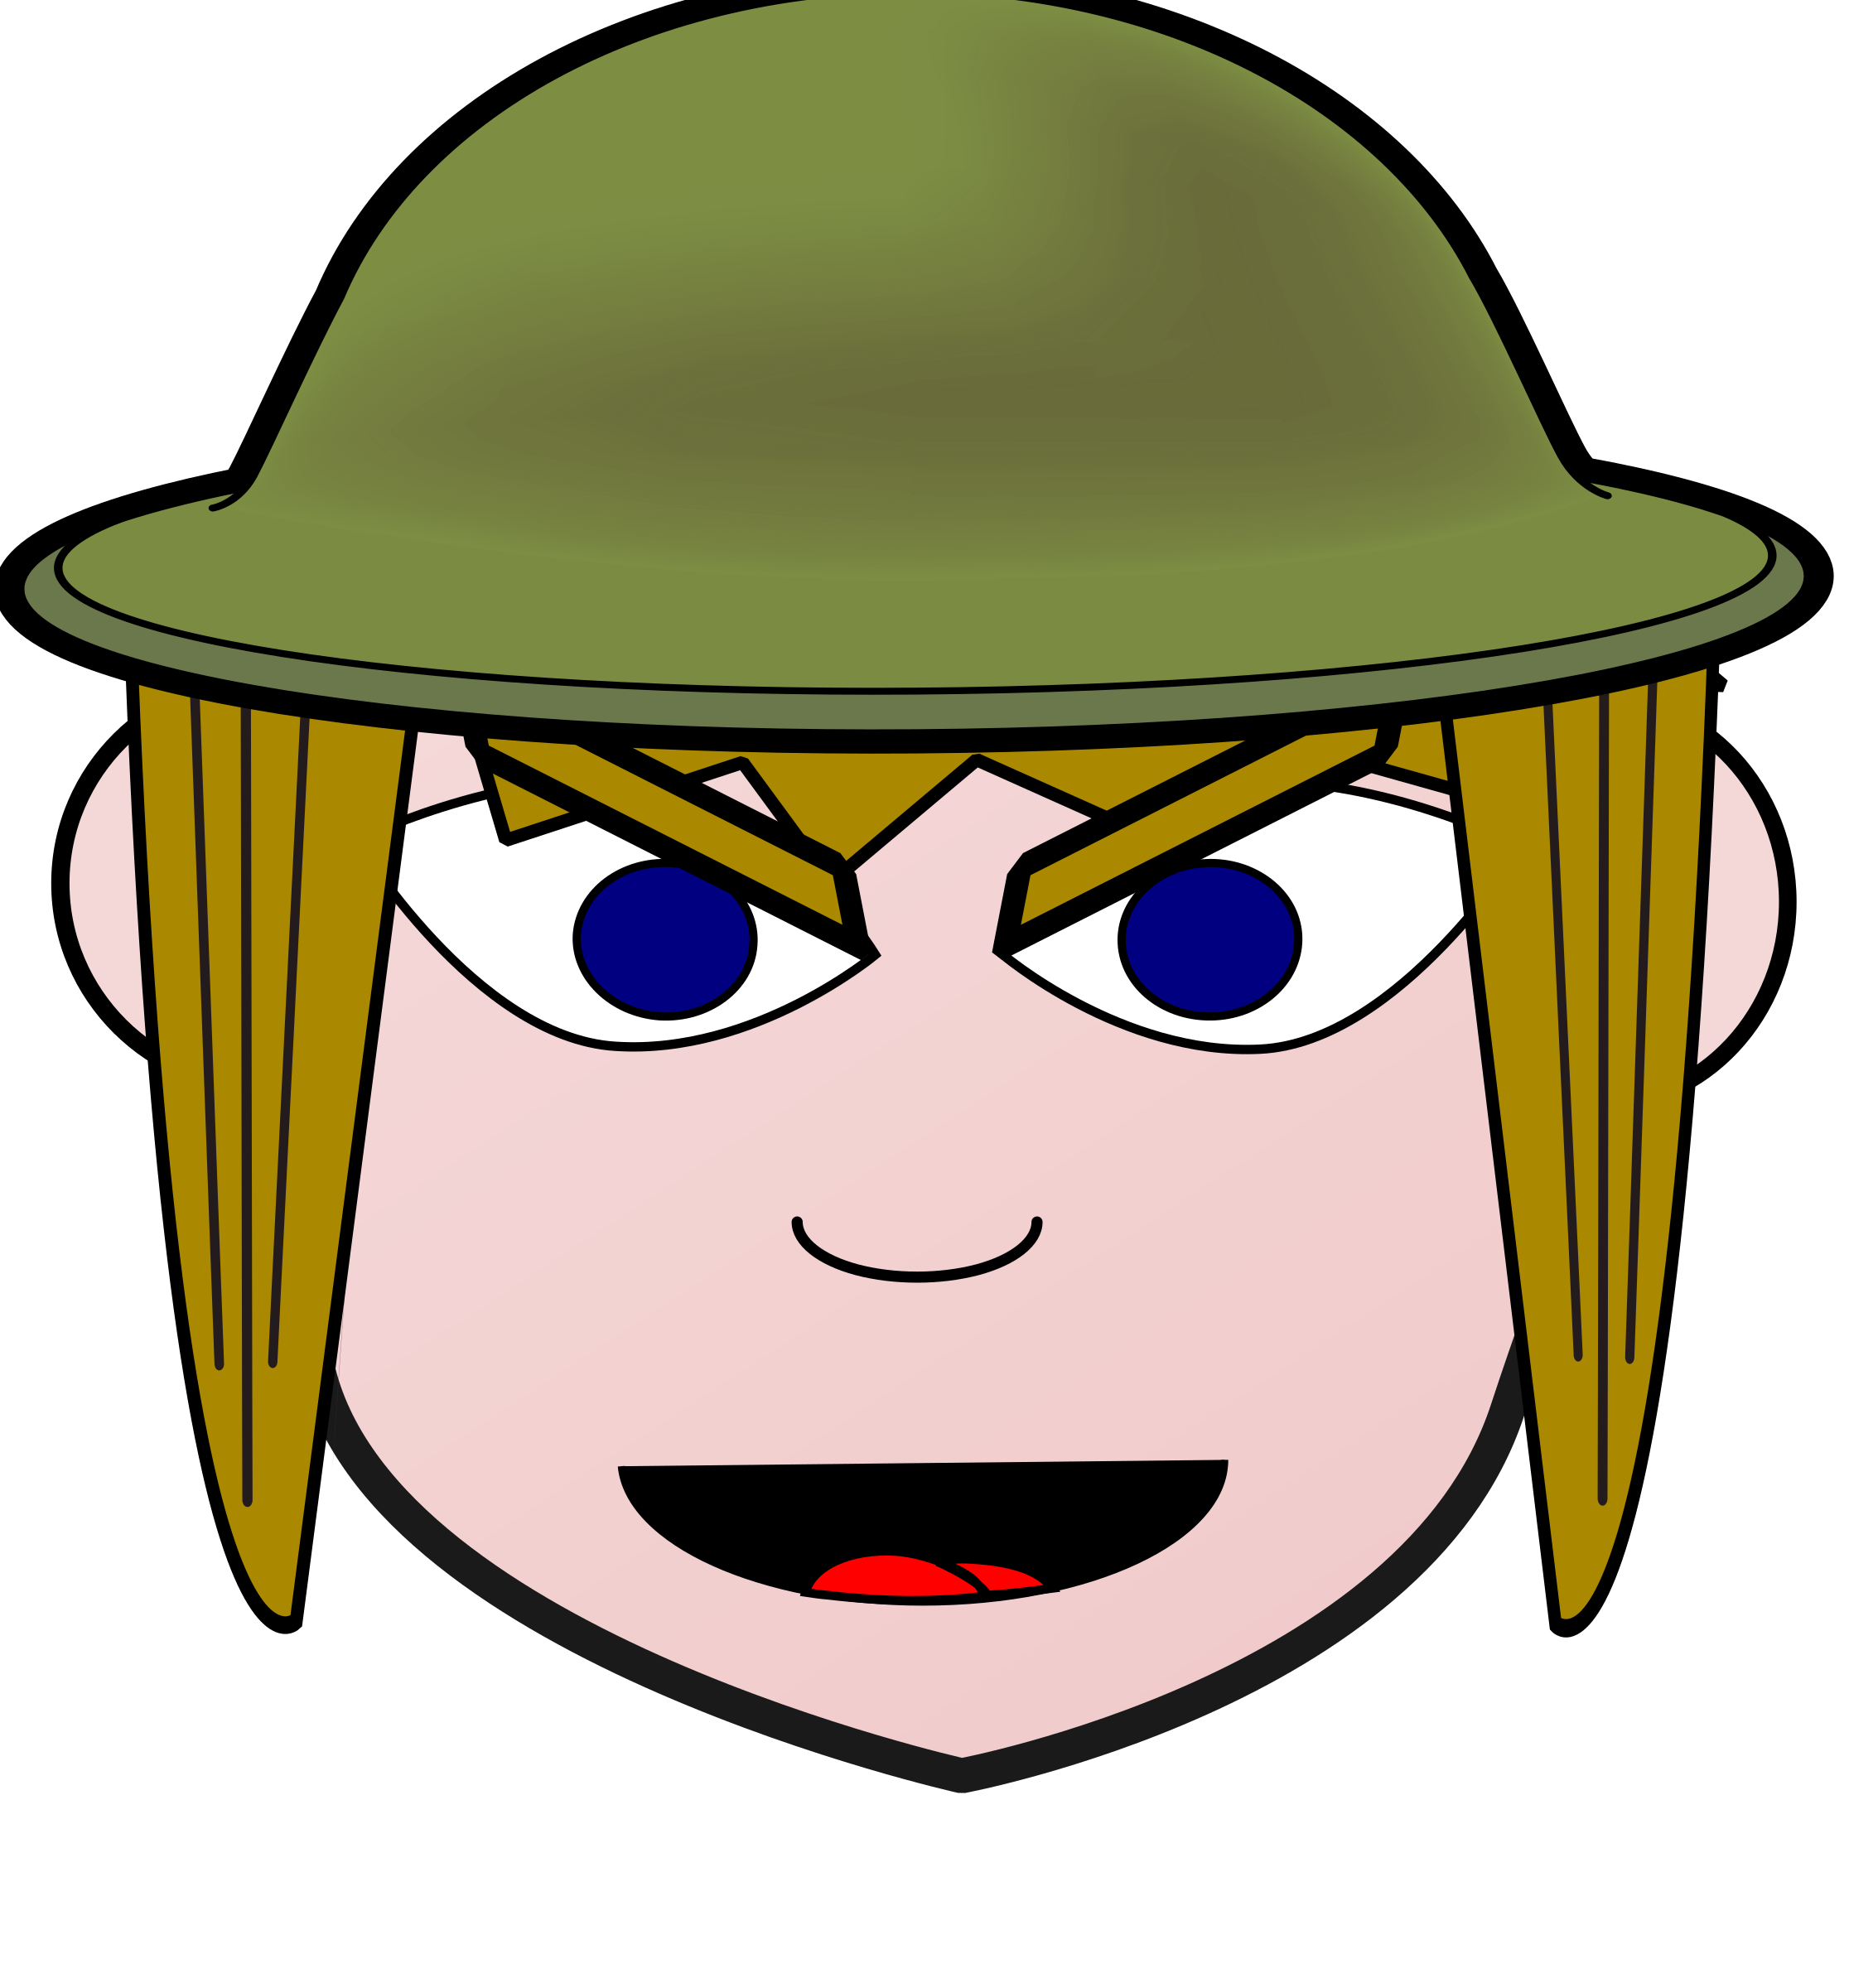 Clothes clipart soldier. Angry girl big image